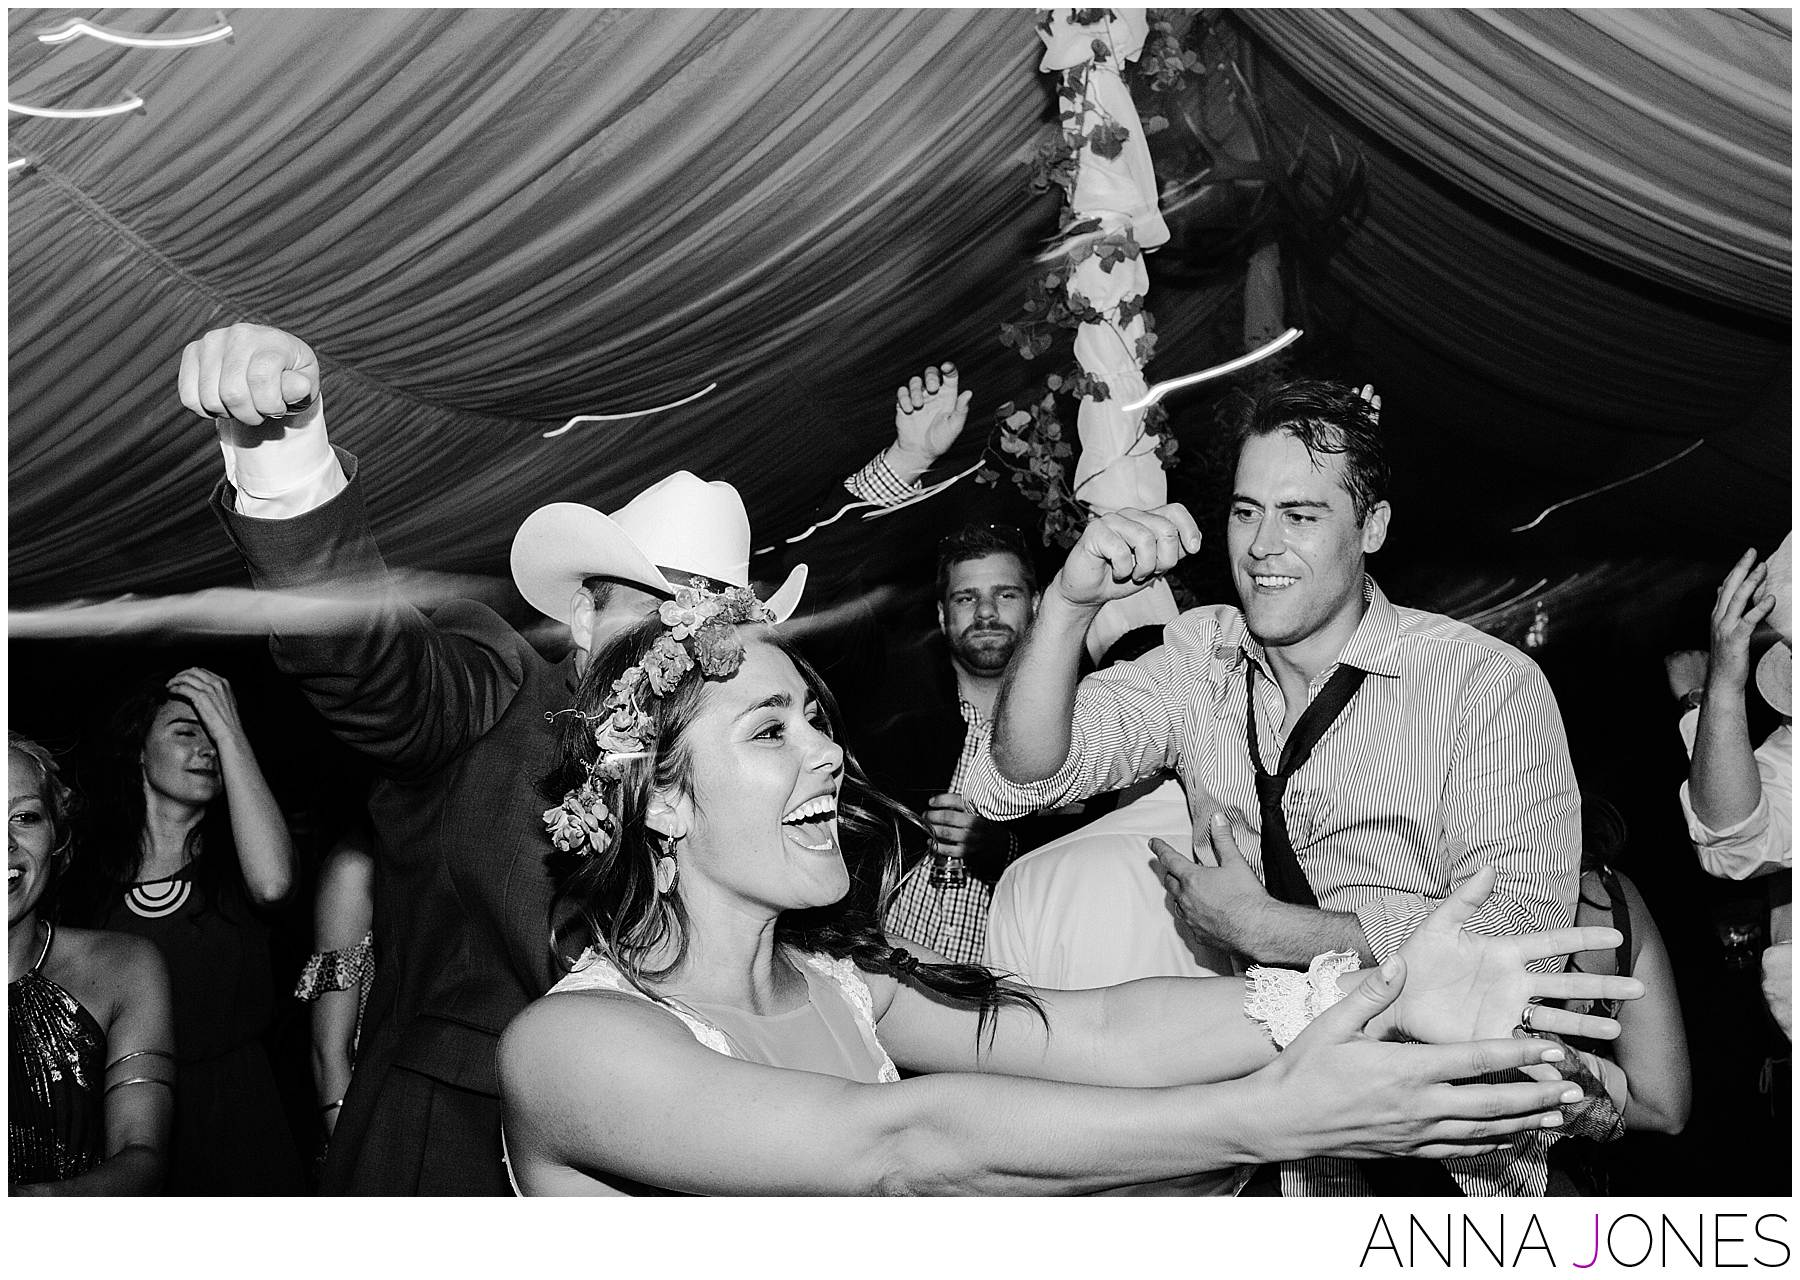 Amanda Cassel + Darius Subatis by Anna Jones Wedding Photography - www.annajon.es